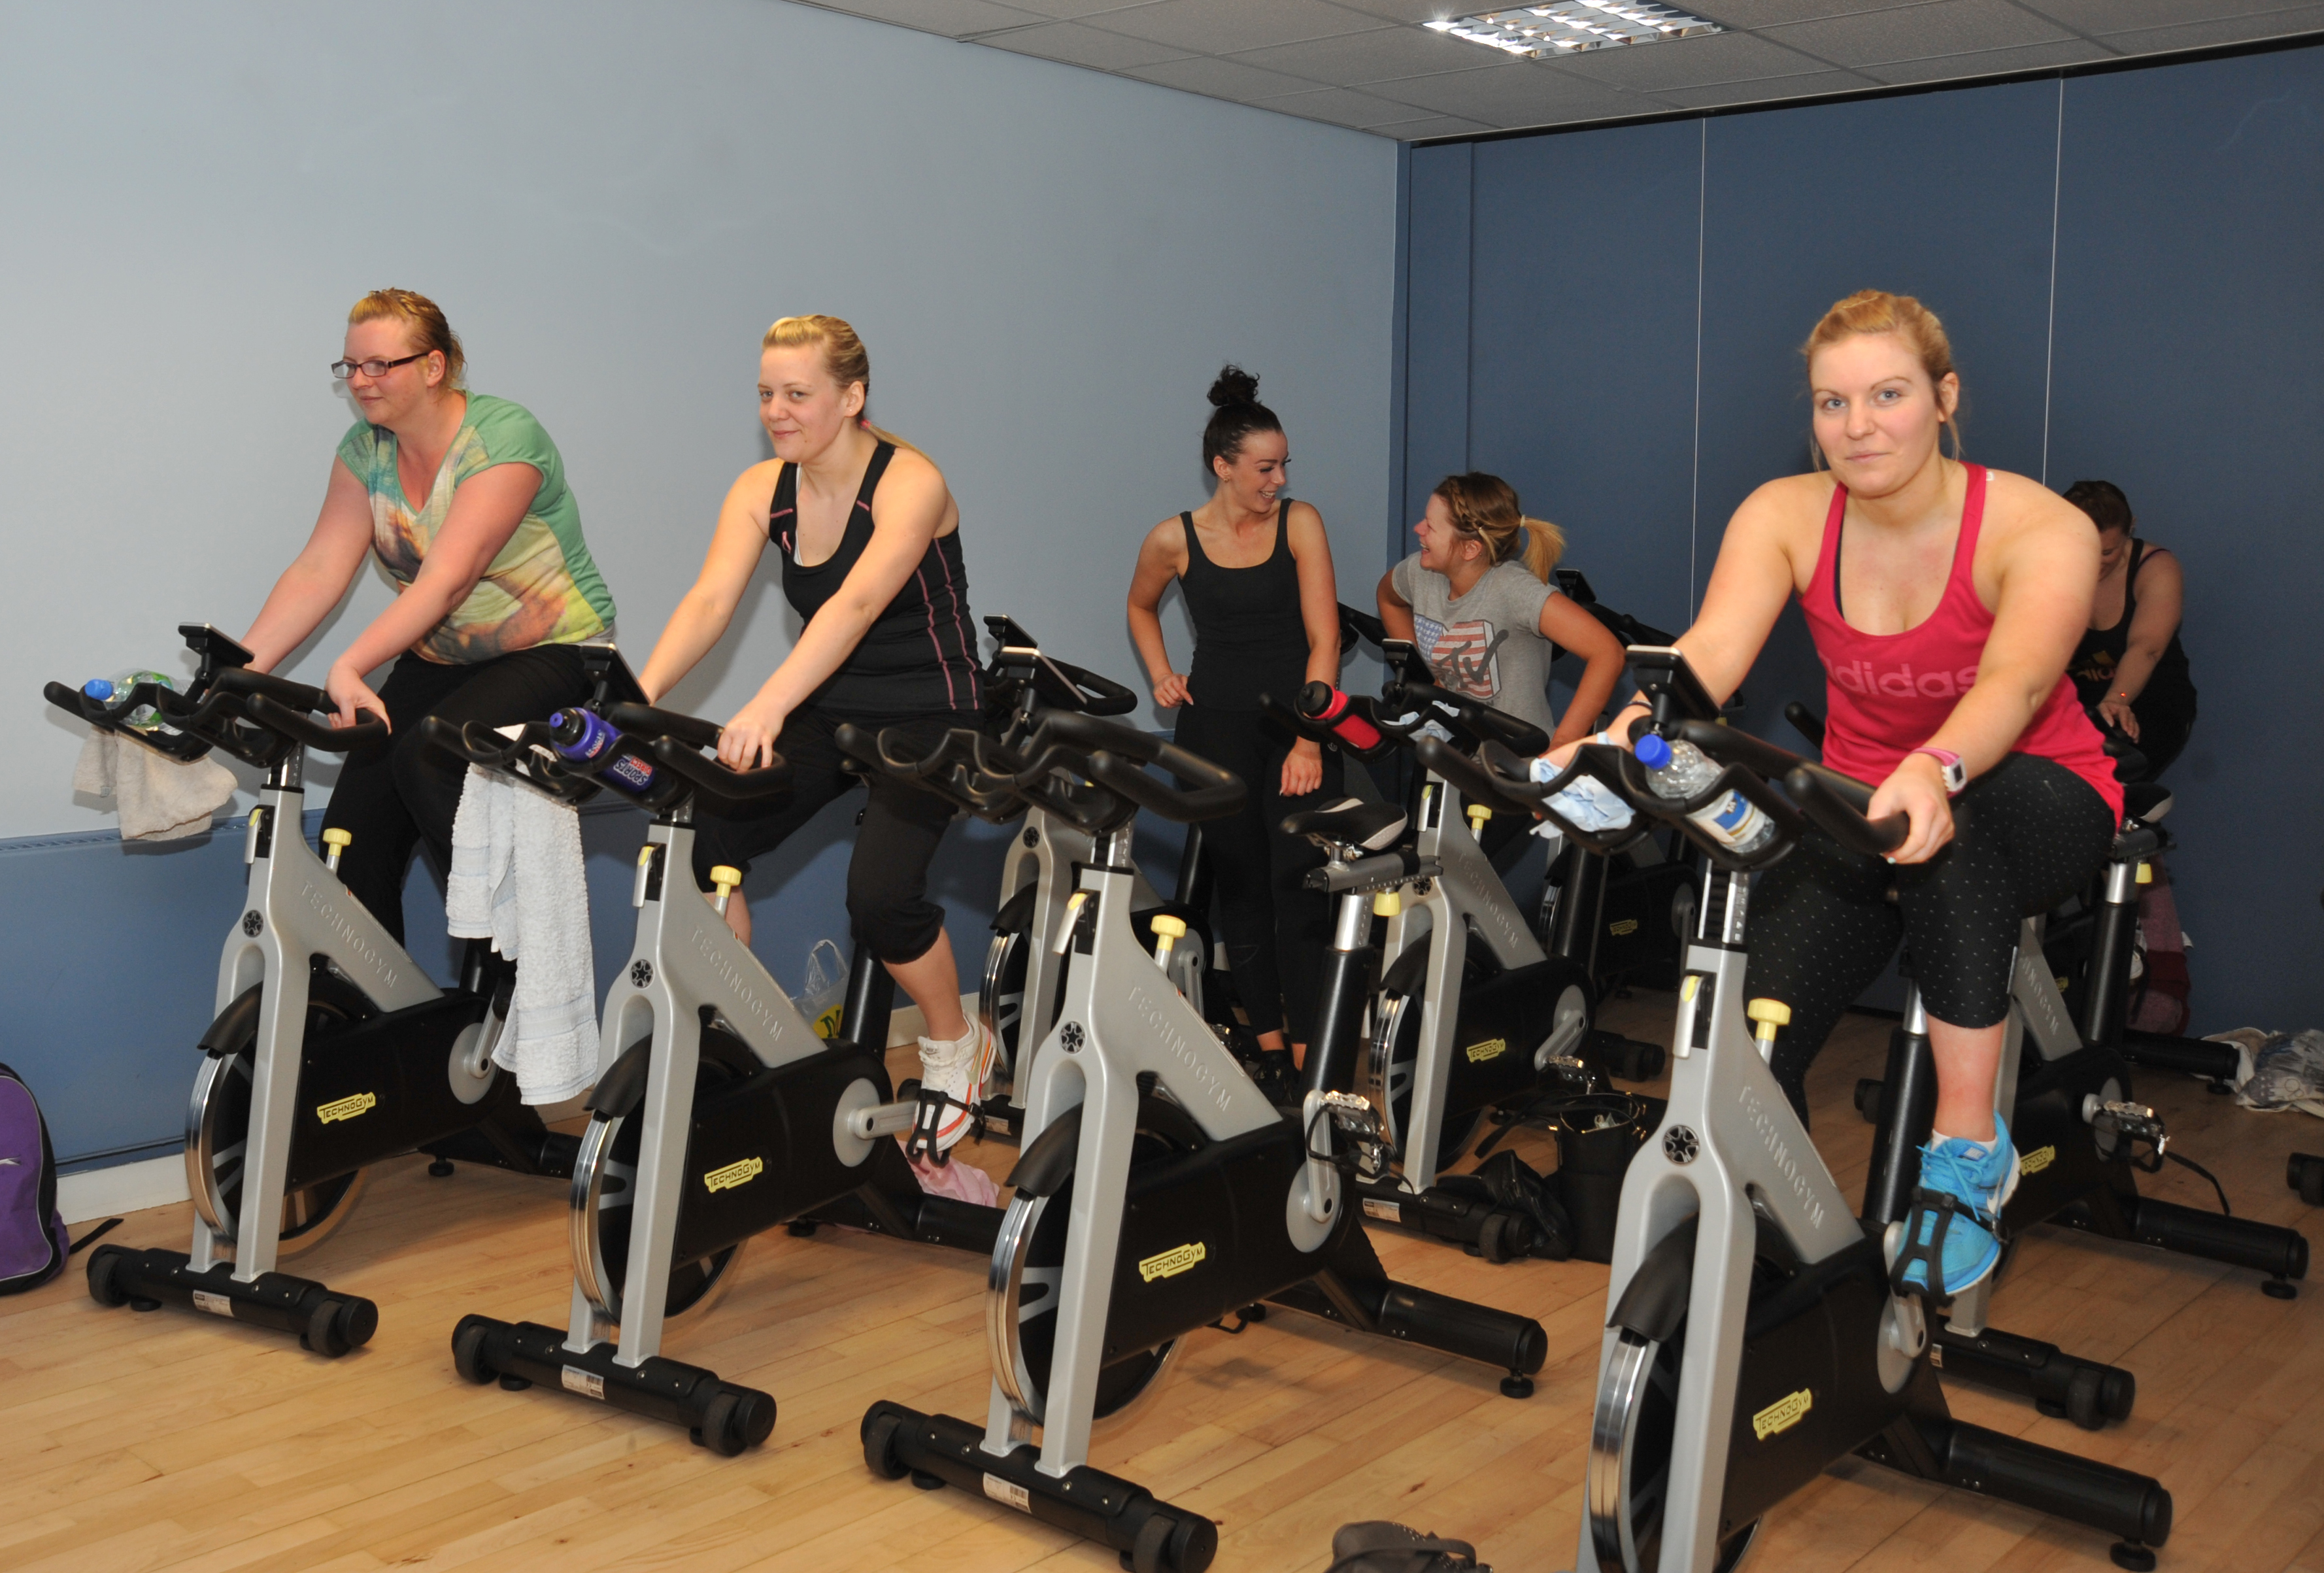 Gym users at Cowdenbeath Leisure Centre.